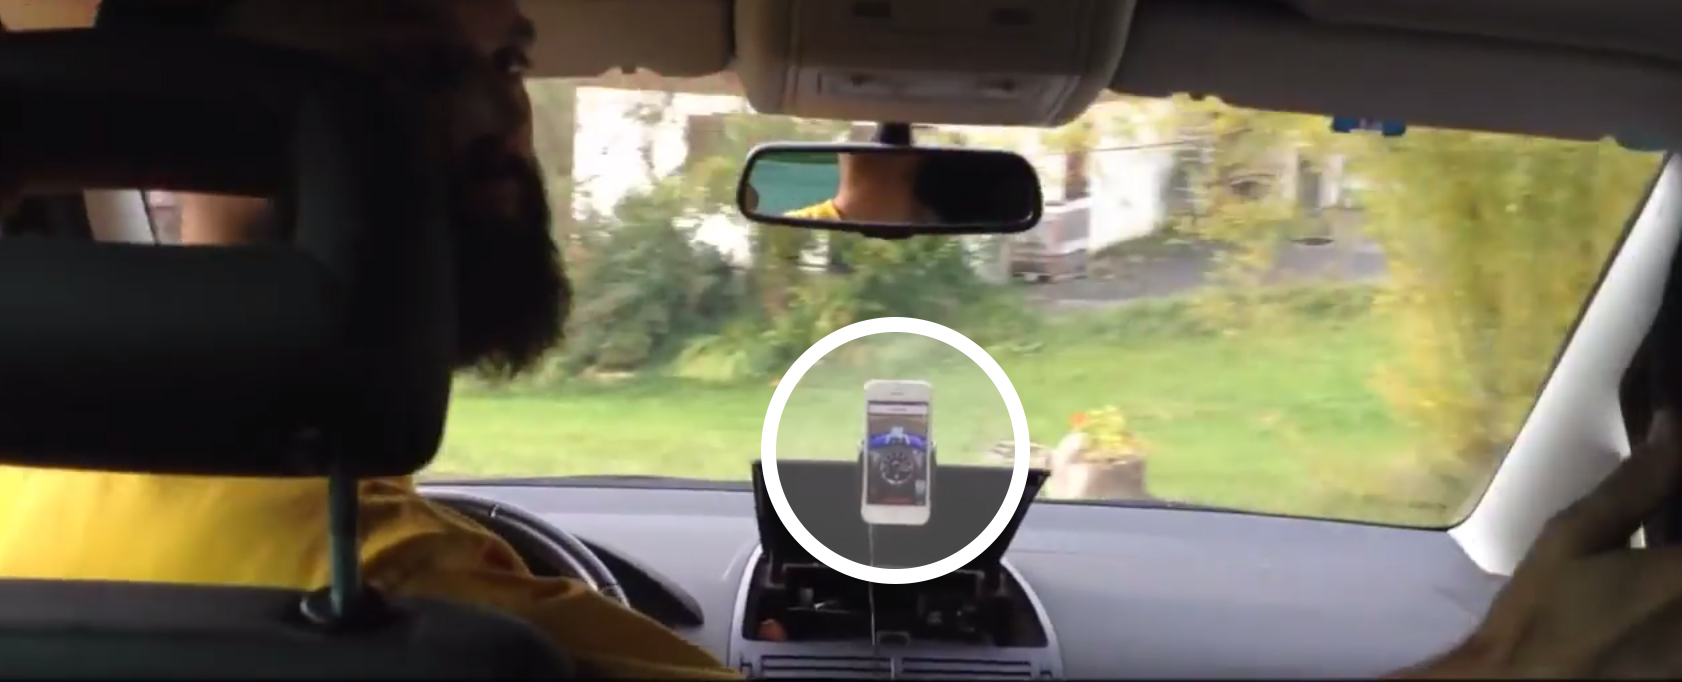 RjDj's app senses acceleration and turning forces whilst placed on dashboard